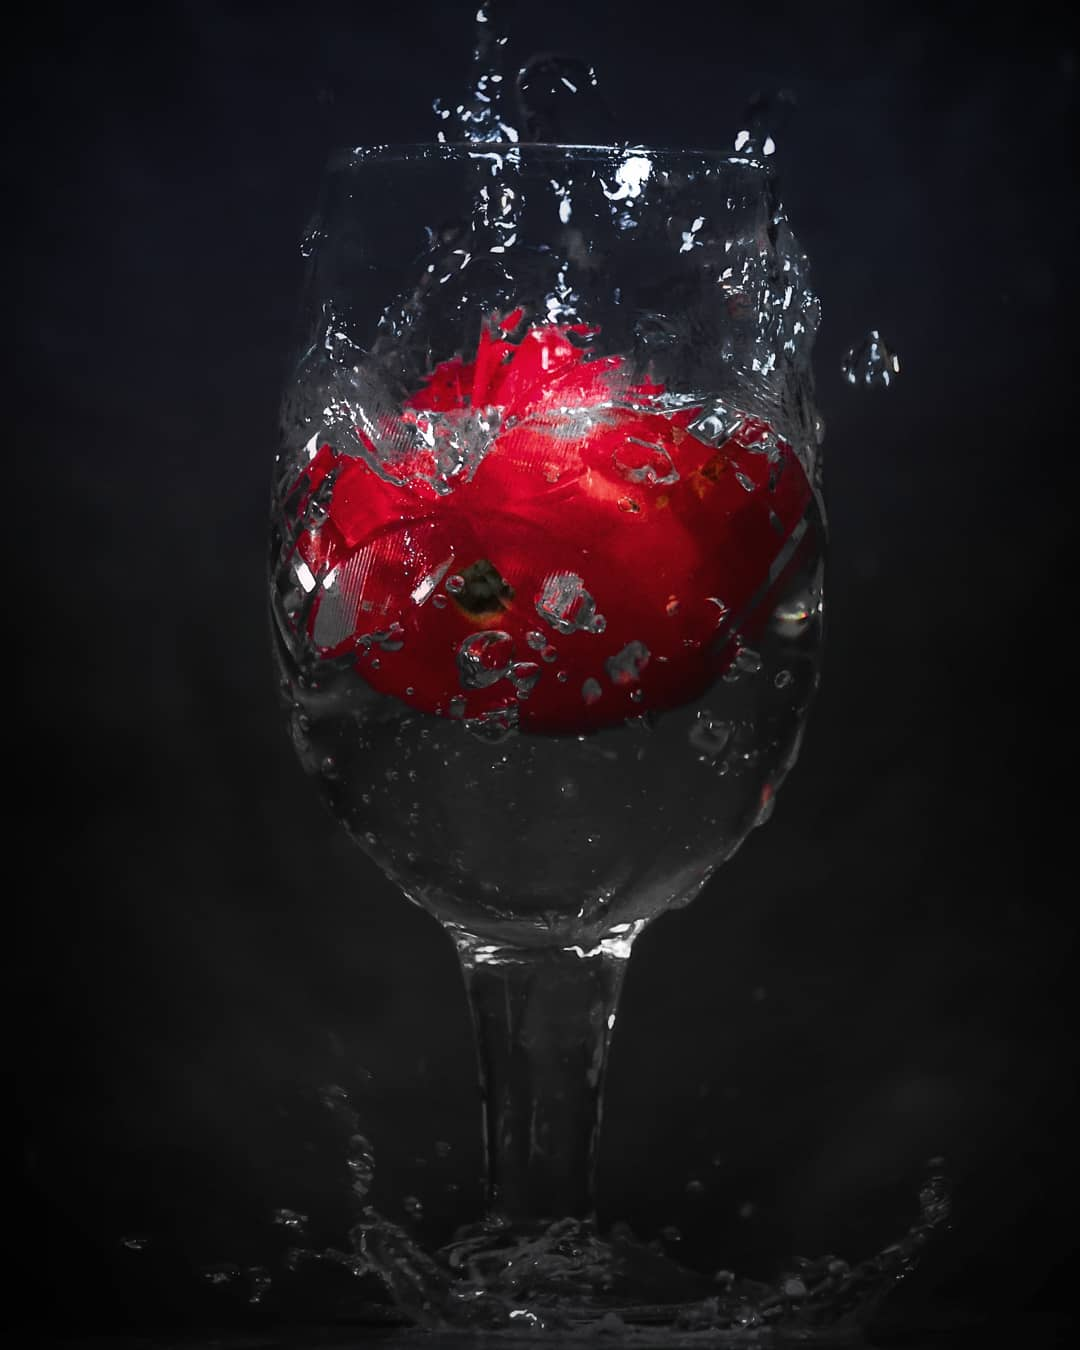 Tomato and Water Splash